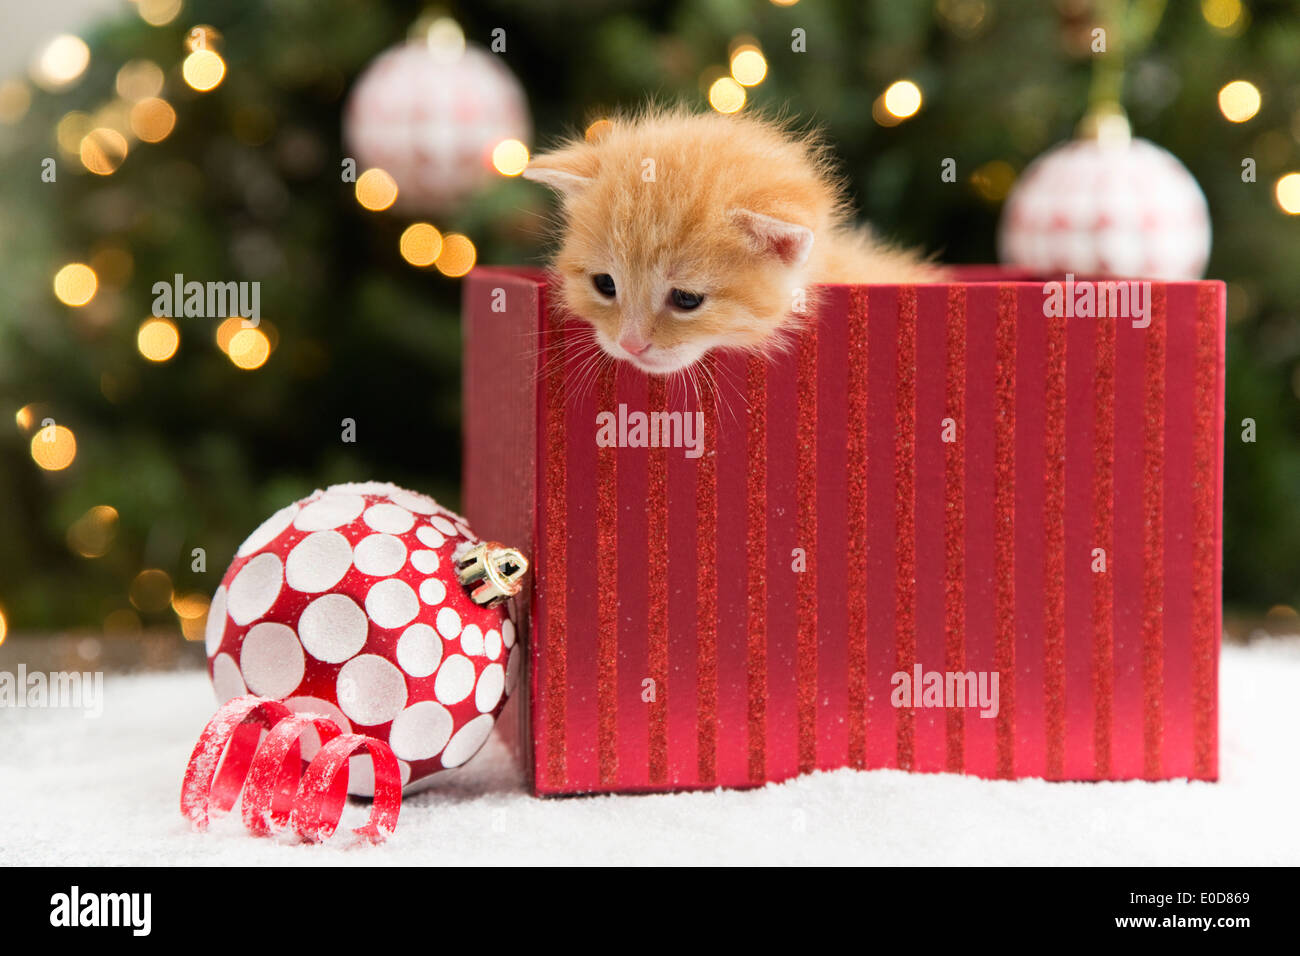 Kitten in red box at Christmas - Stock Image